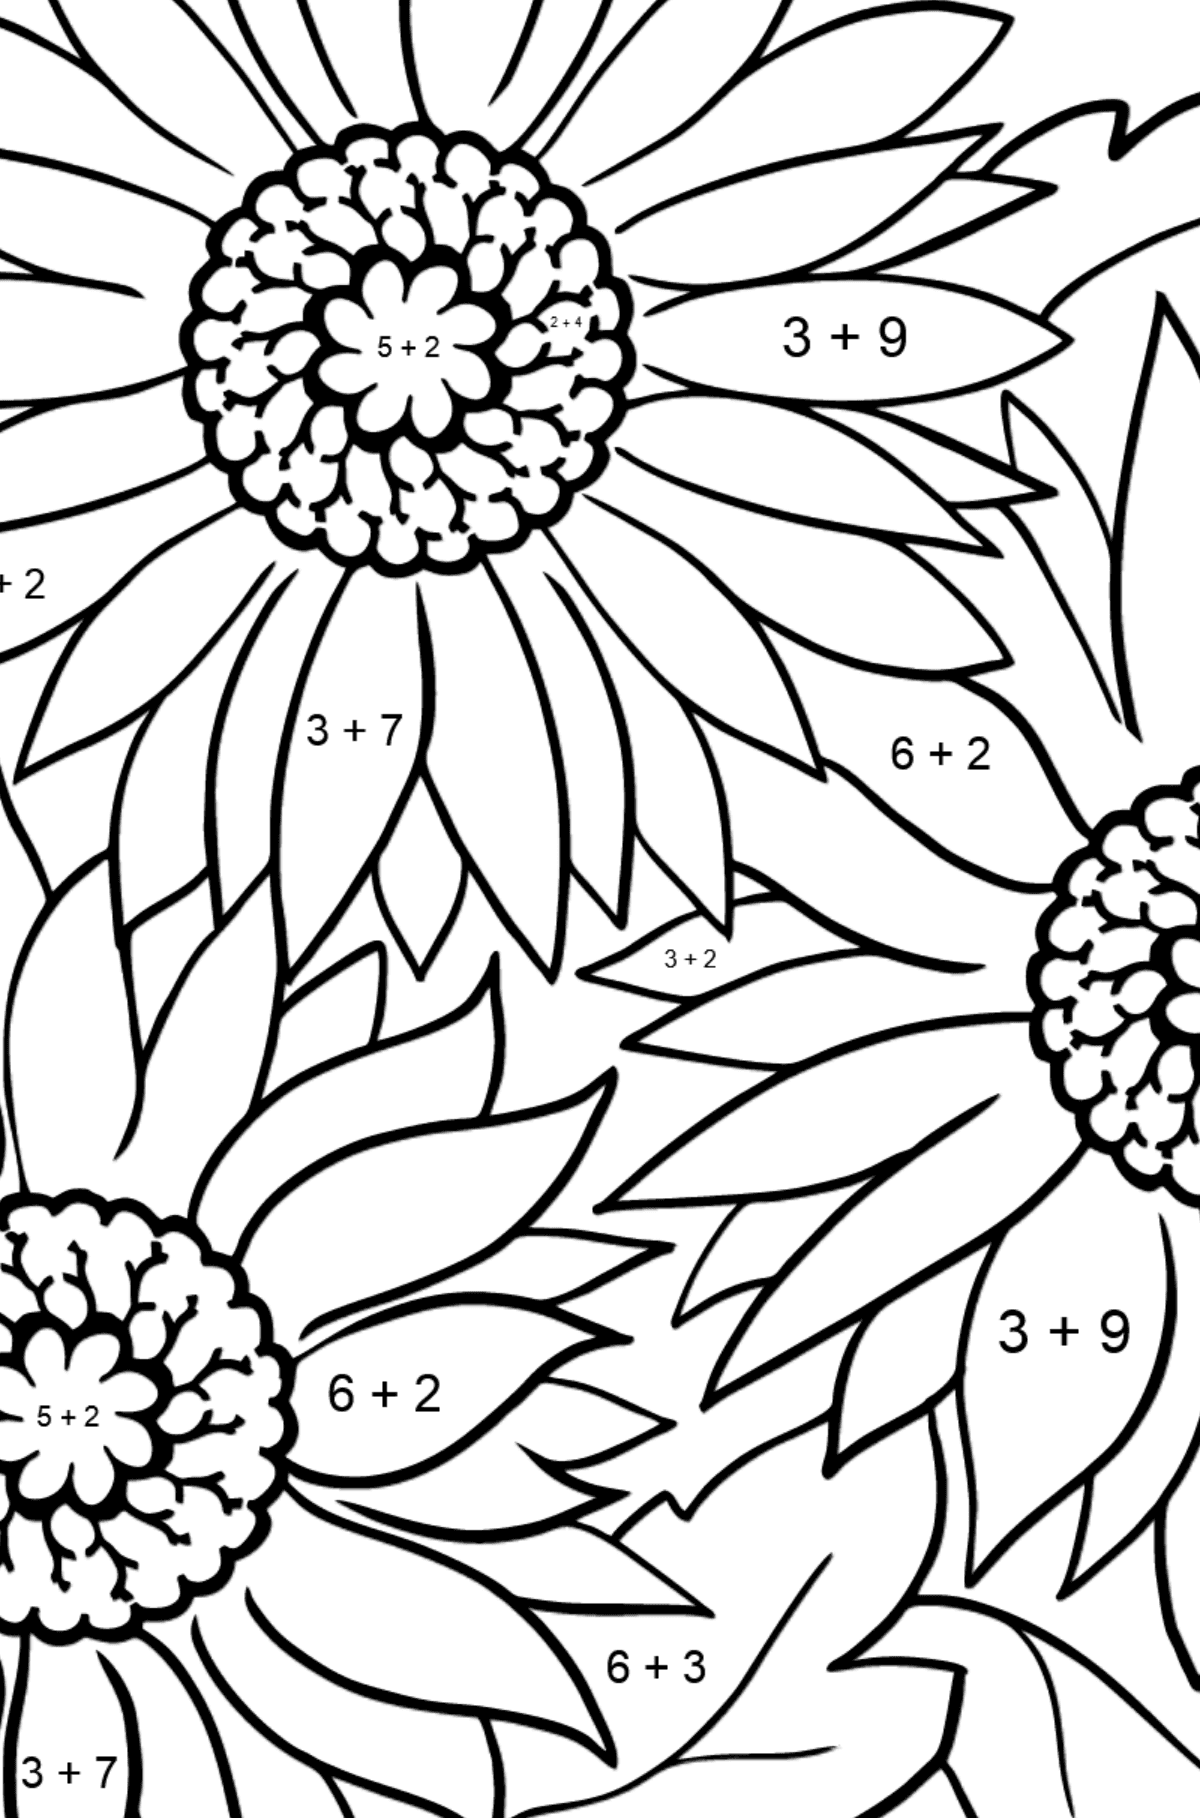 Coloring Page - Yellow Gerbera - Math Coloring - Addition for Kids